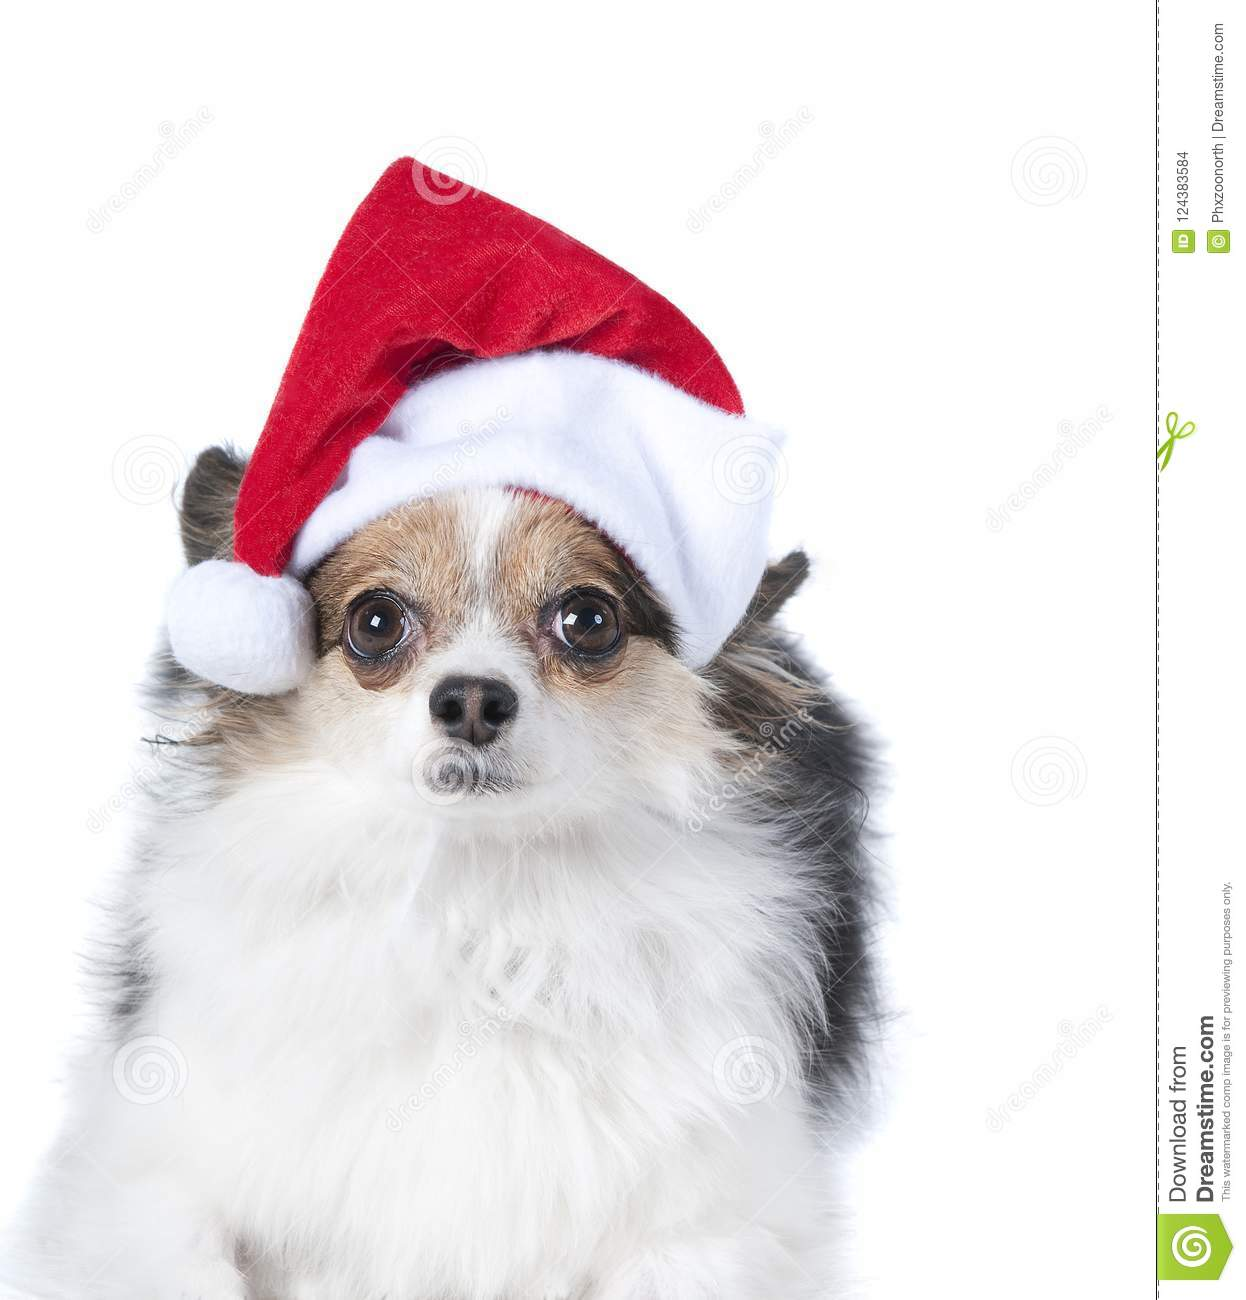 ad857c304 Brown And White Puppy Dog With Holiday Christmas Santa Hat Isolated ...